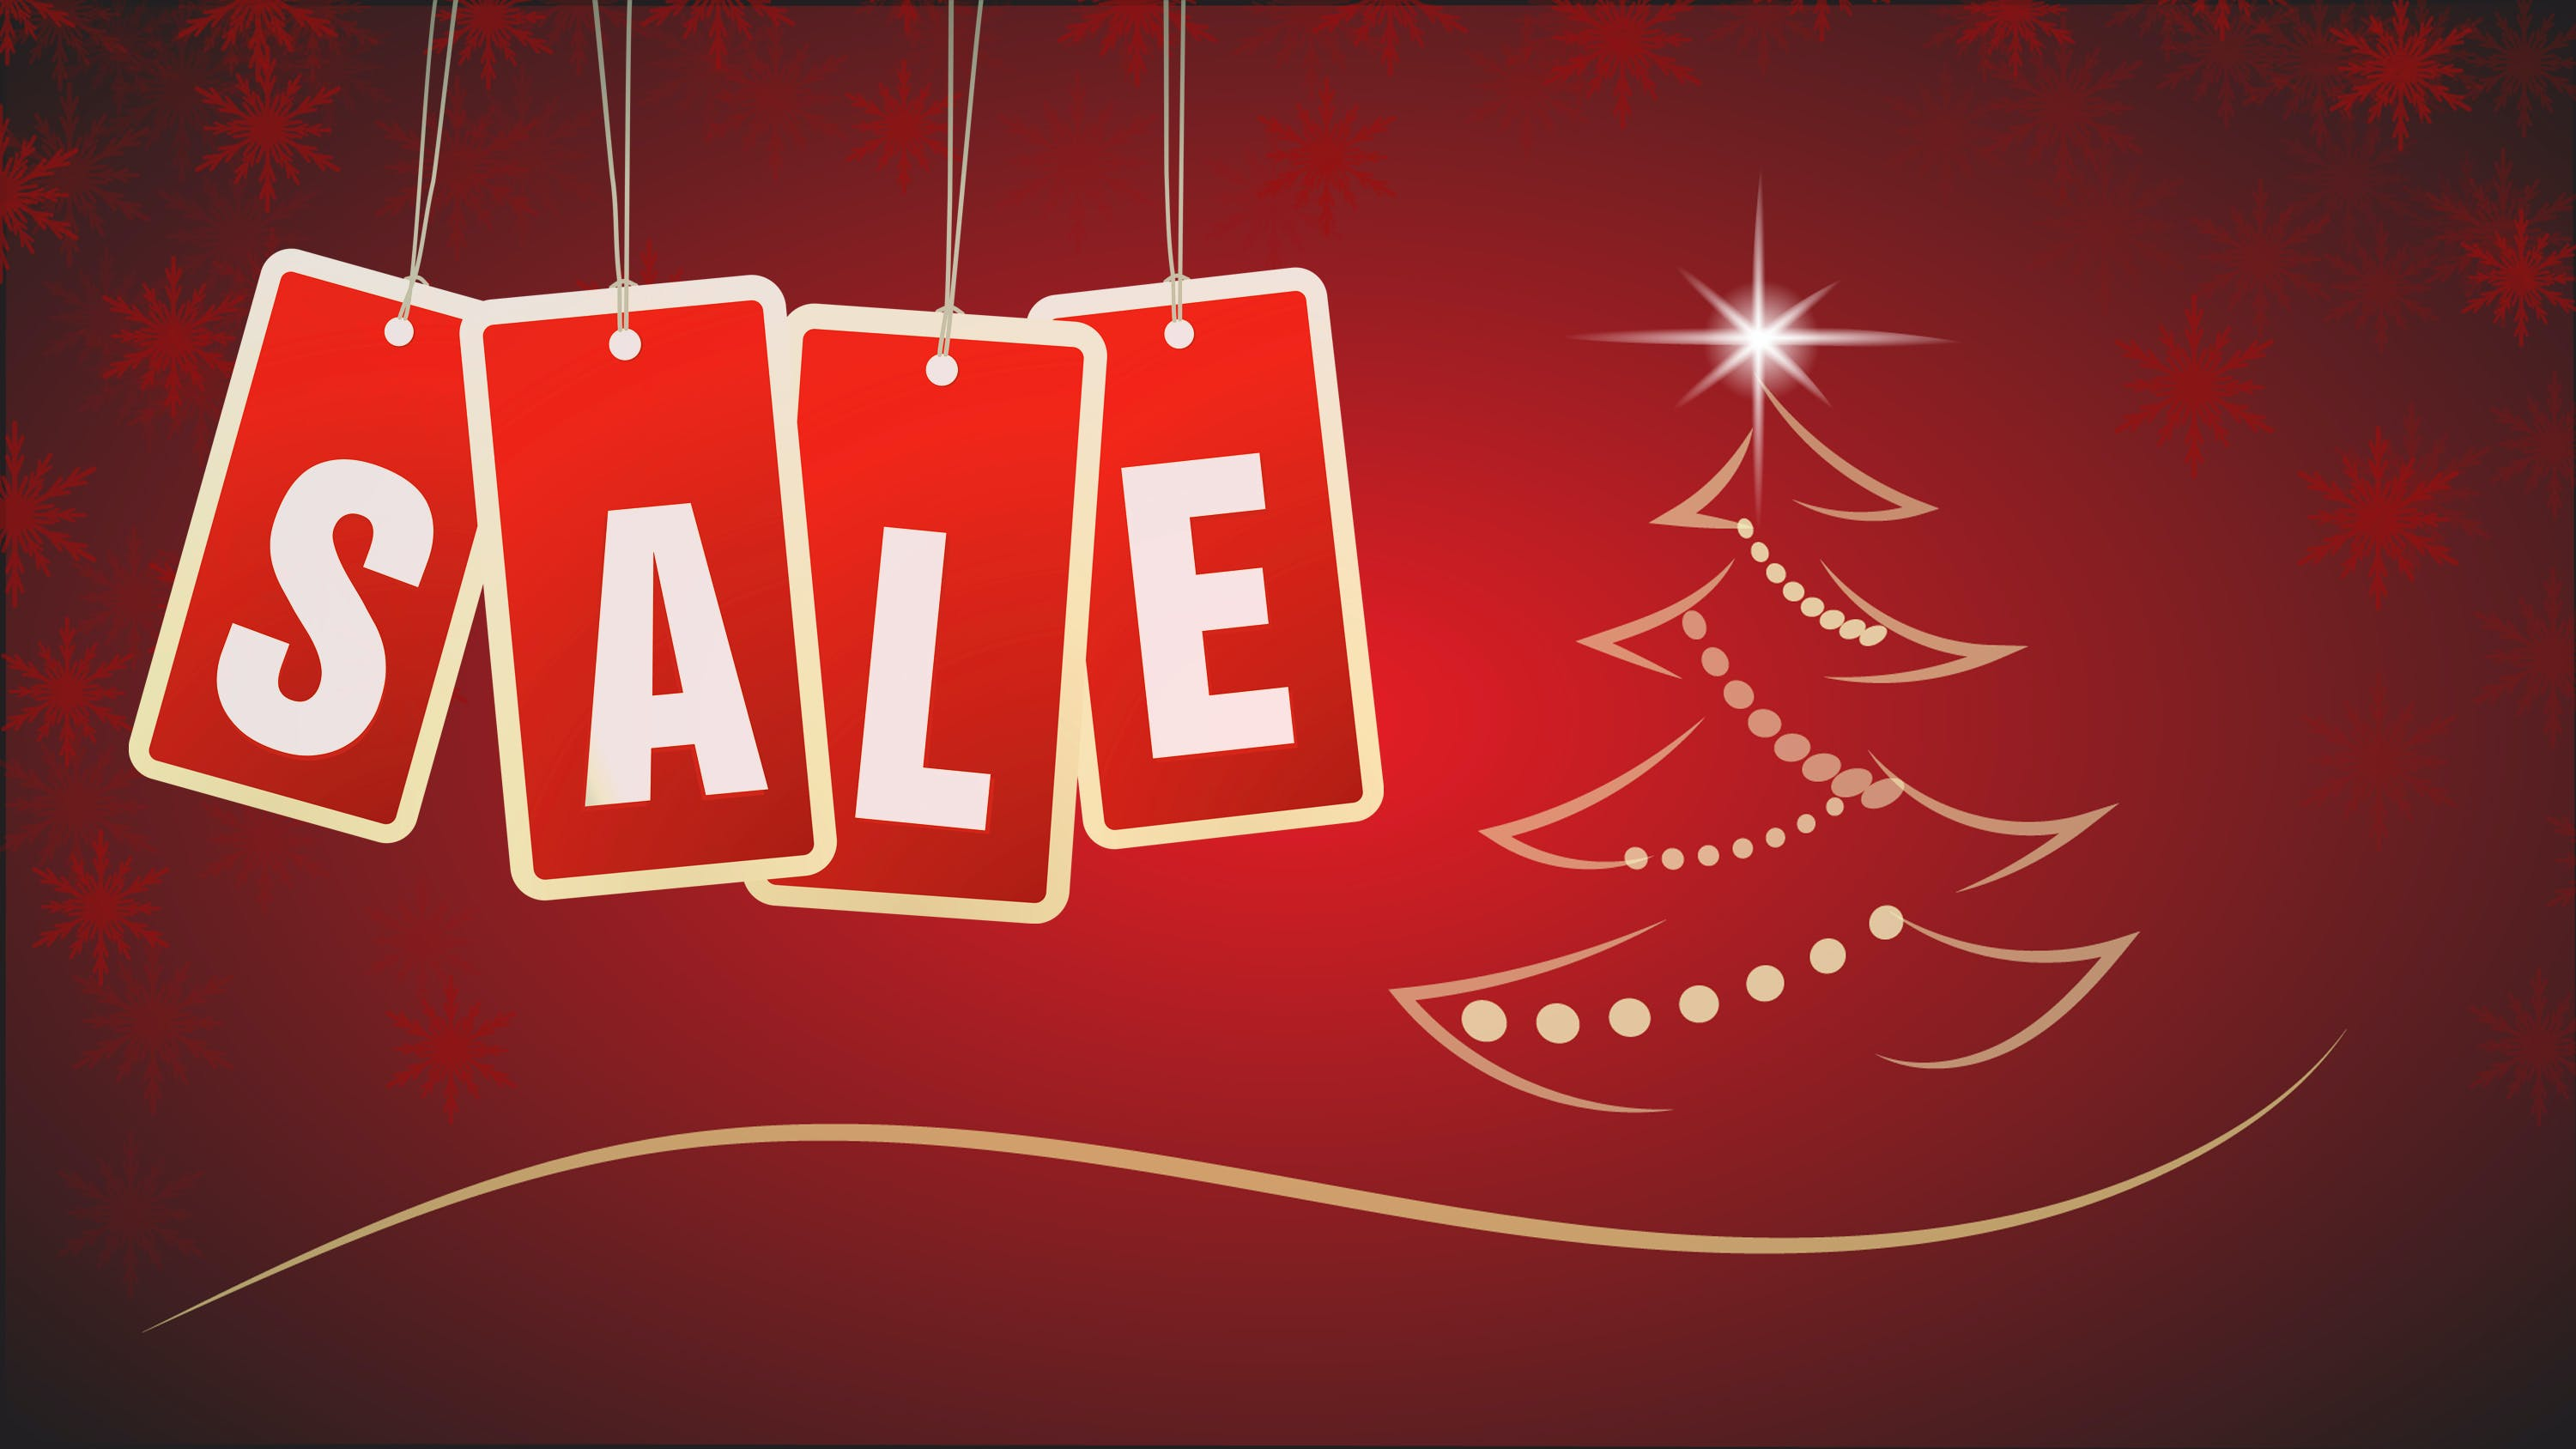 of christmas, christmas discounts, happy new year, new year